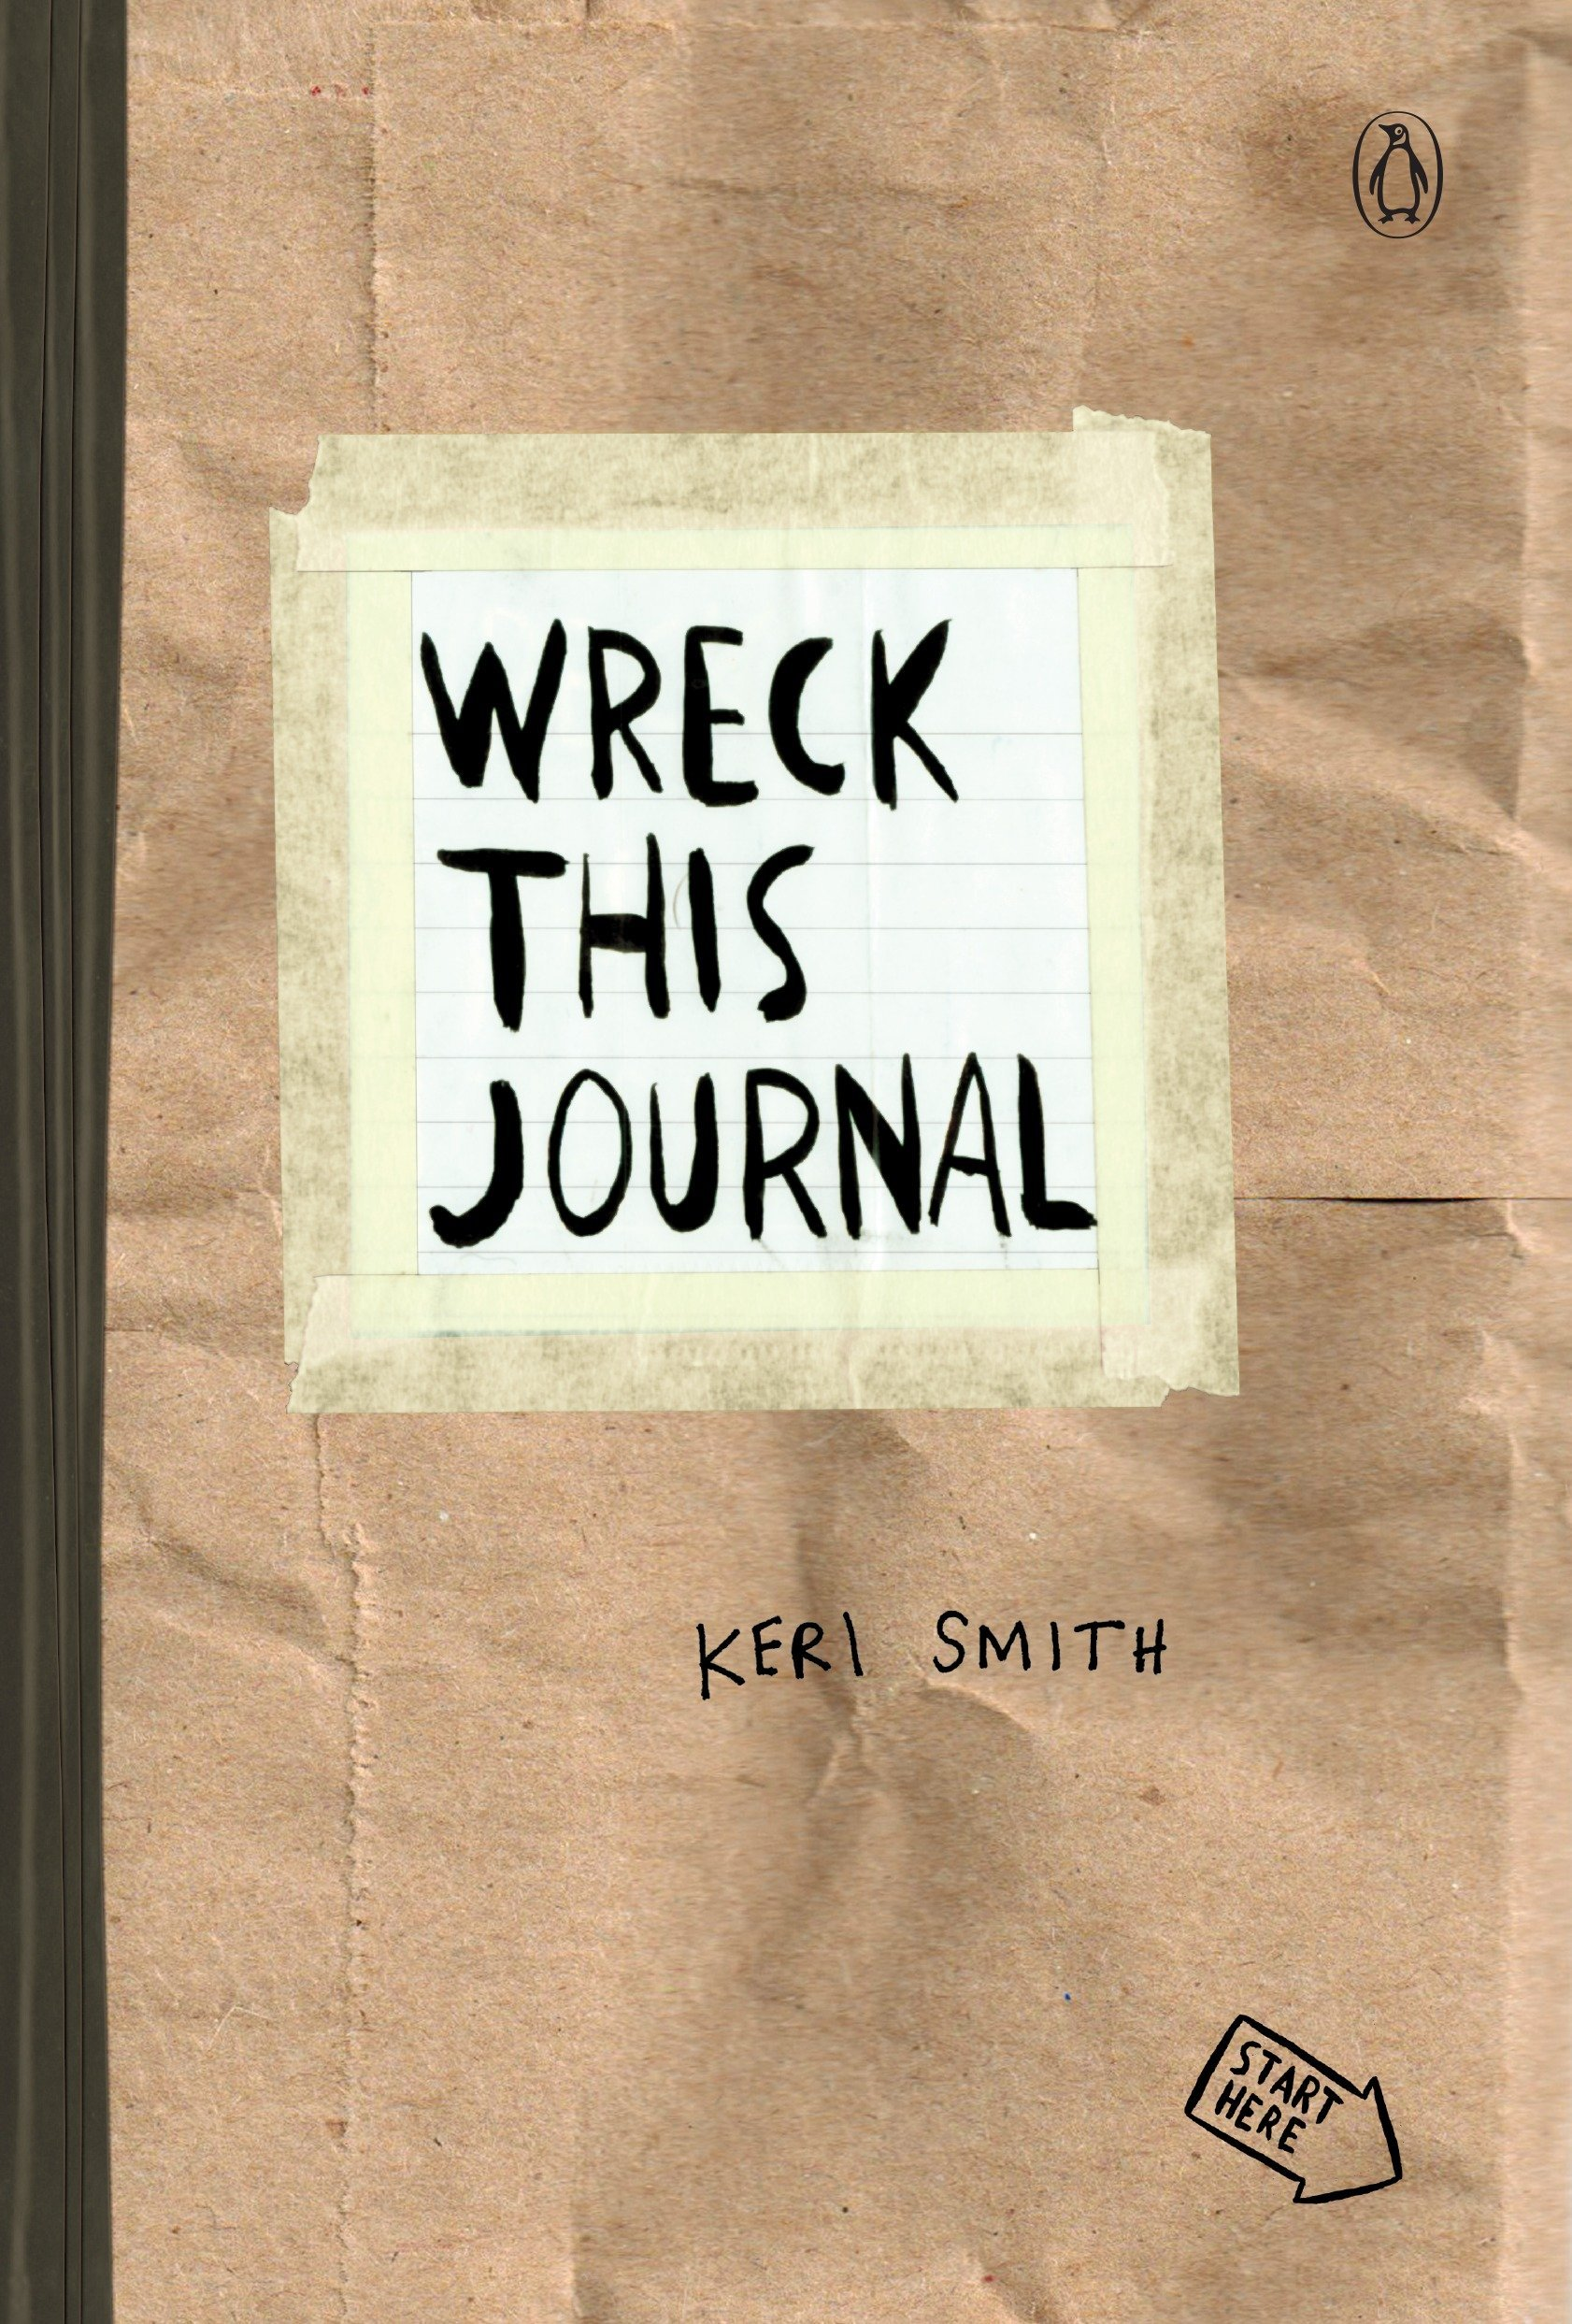 where can you get a wreck this journal book